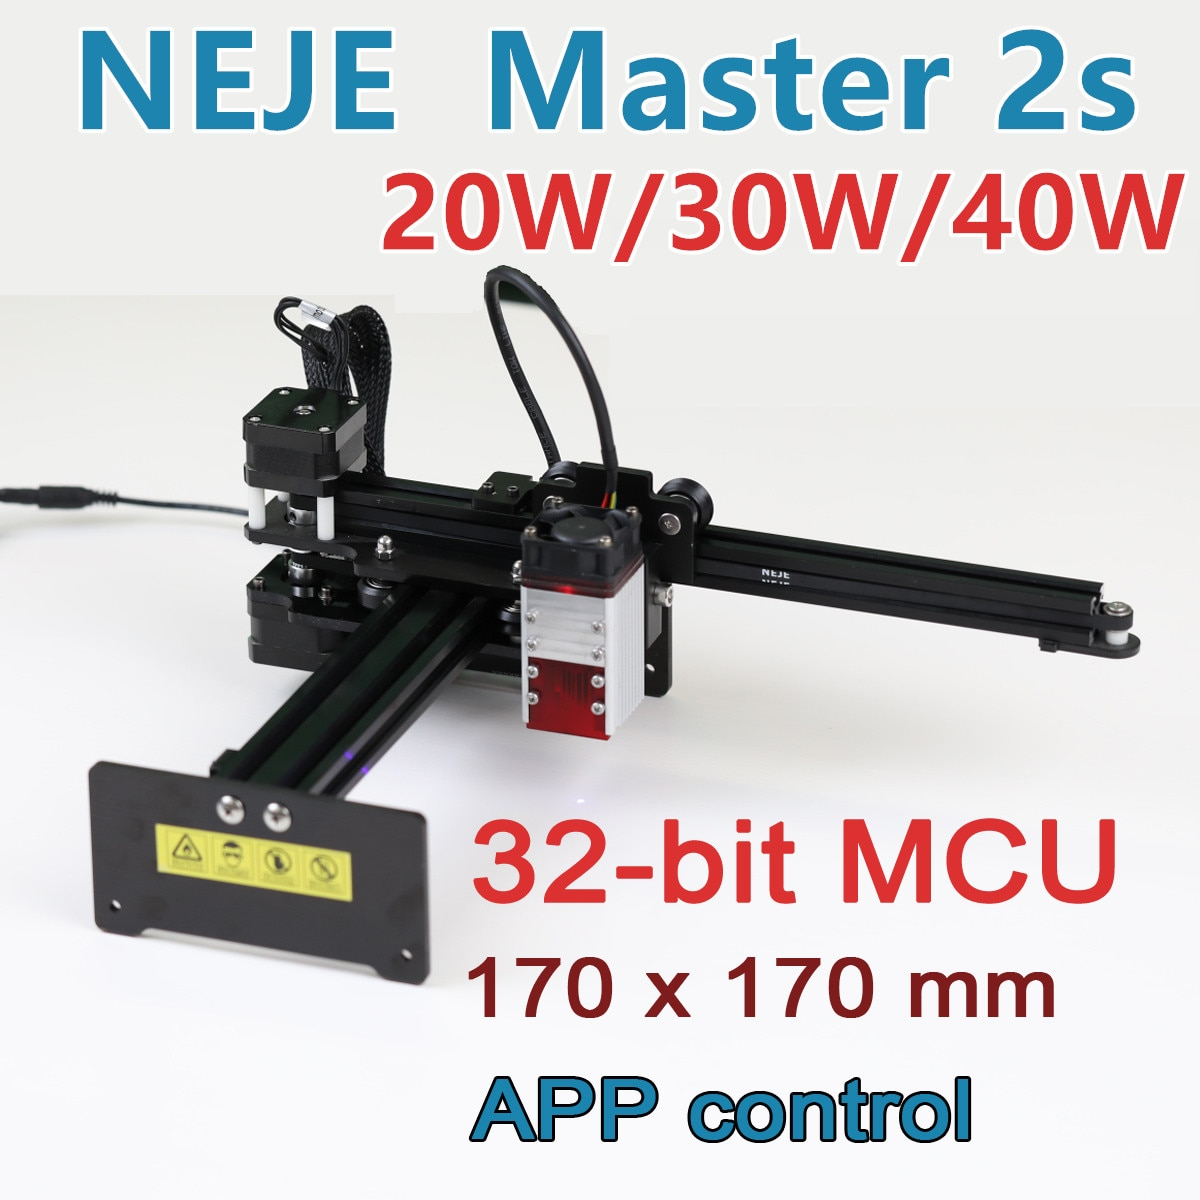 ORTUR Laser Master 2 Laser Engraving Cutting Machine With 32-Bit Motherboard 20w 30w 40w Laser Printer CNC Router Laser Engraver ortur laser master desktop laser engraver cutter laser engraving machine 32 bit motherboard laser grbl control software easy to install